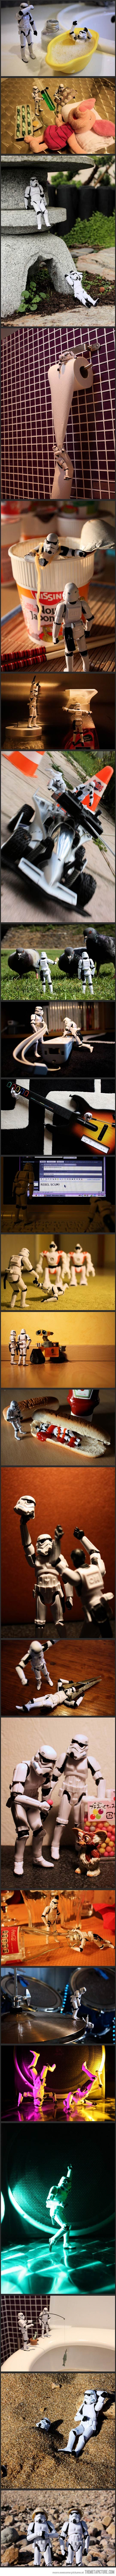 Storm Troopers are pretty badass